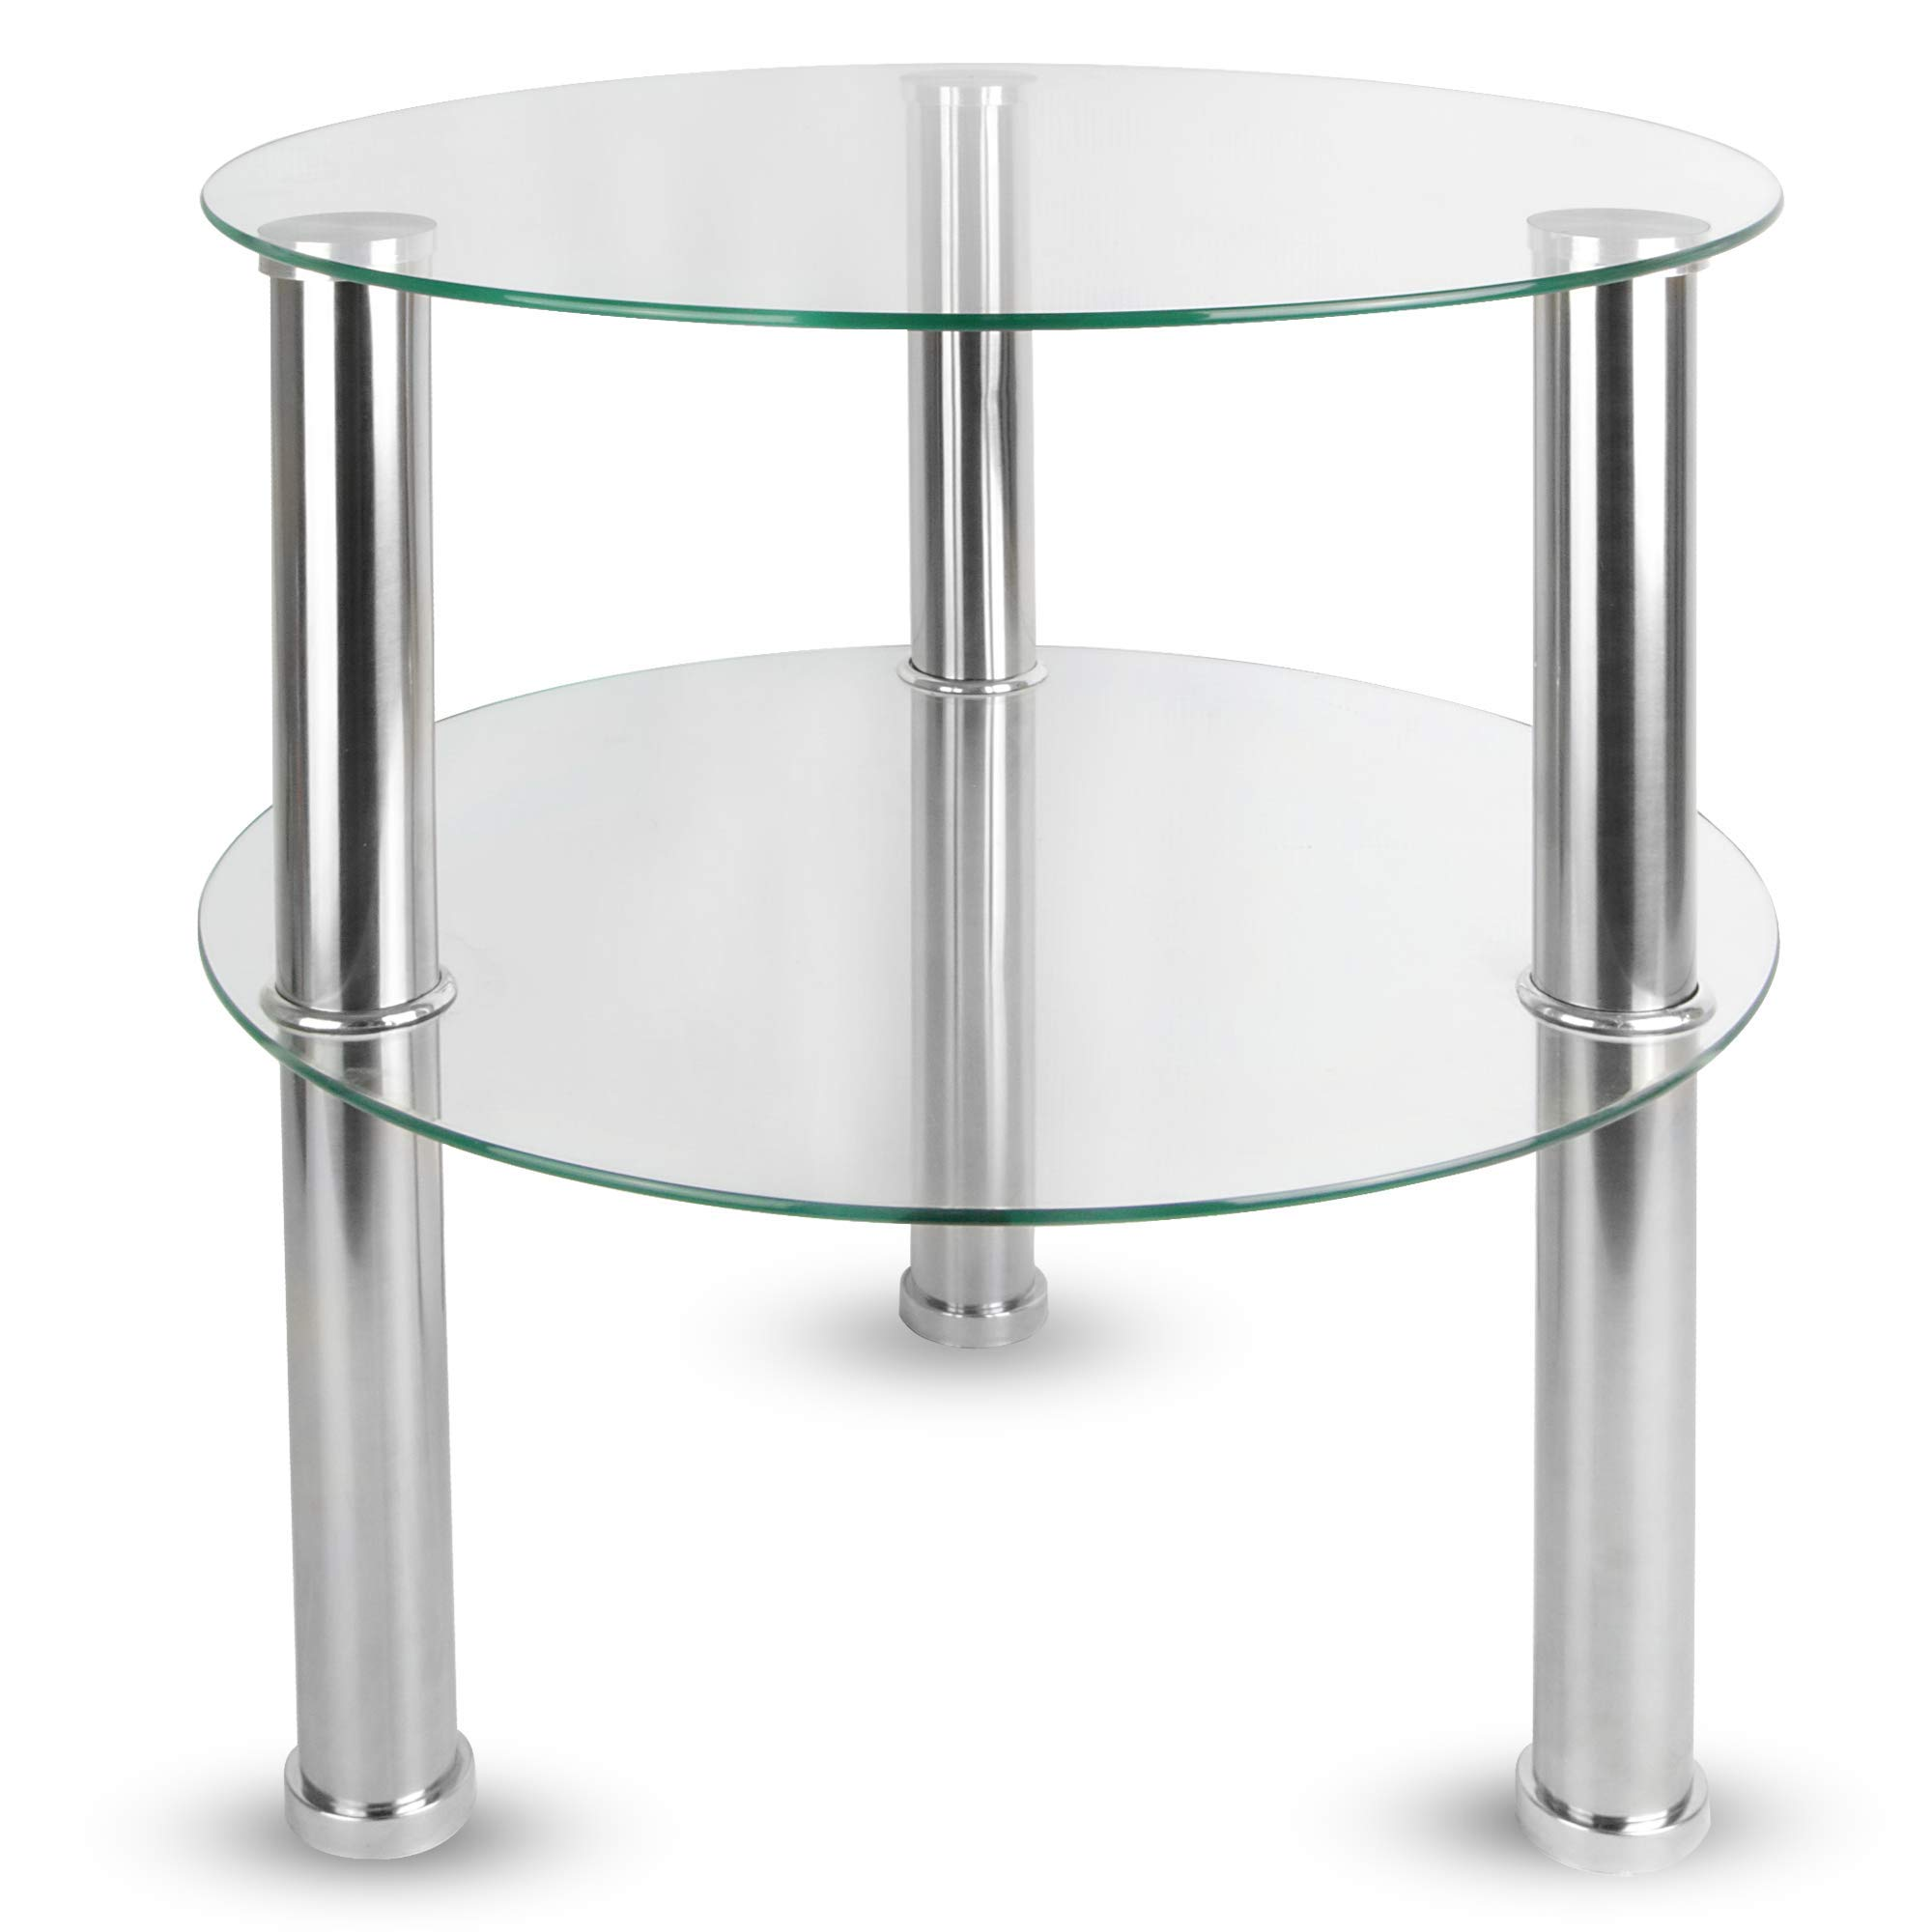 - Maison & White Small Round Glass 2 Tier Table Sofa Bed Side